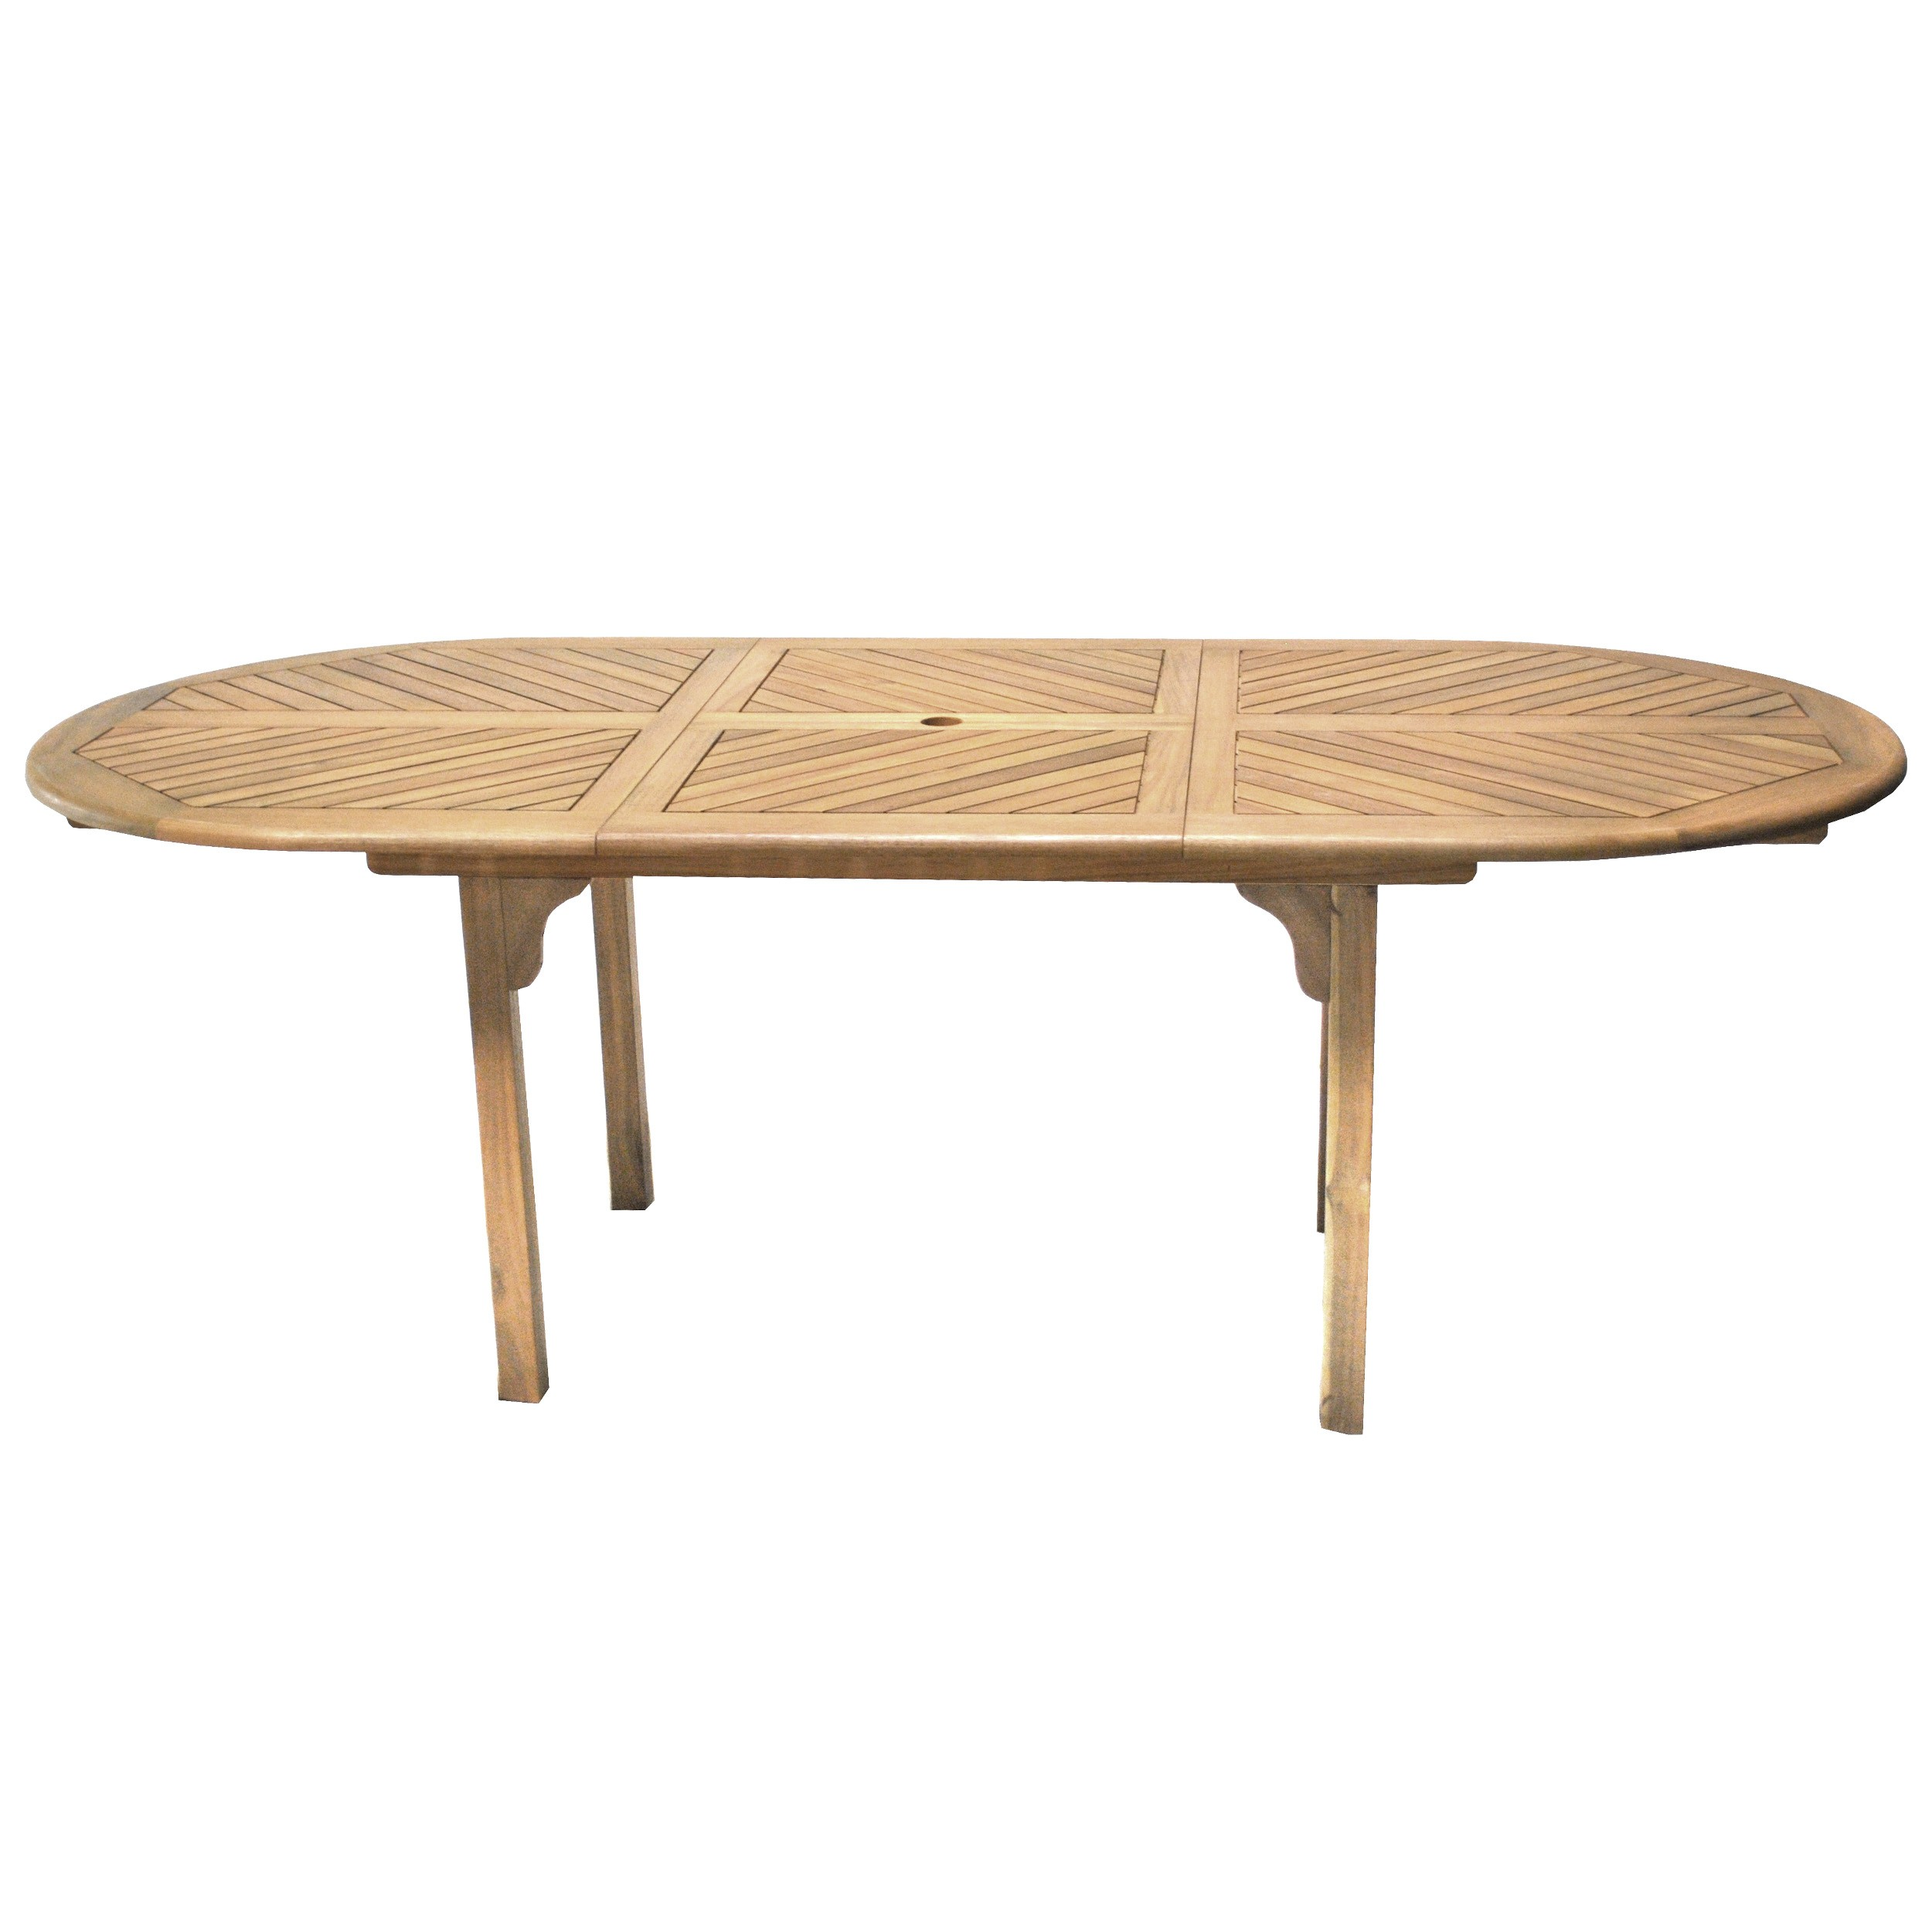 Table de jardin extensible 220 cm Amazonia